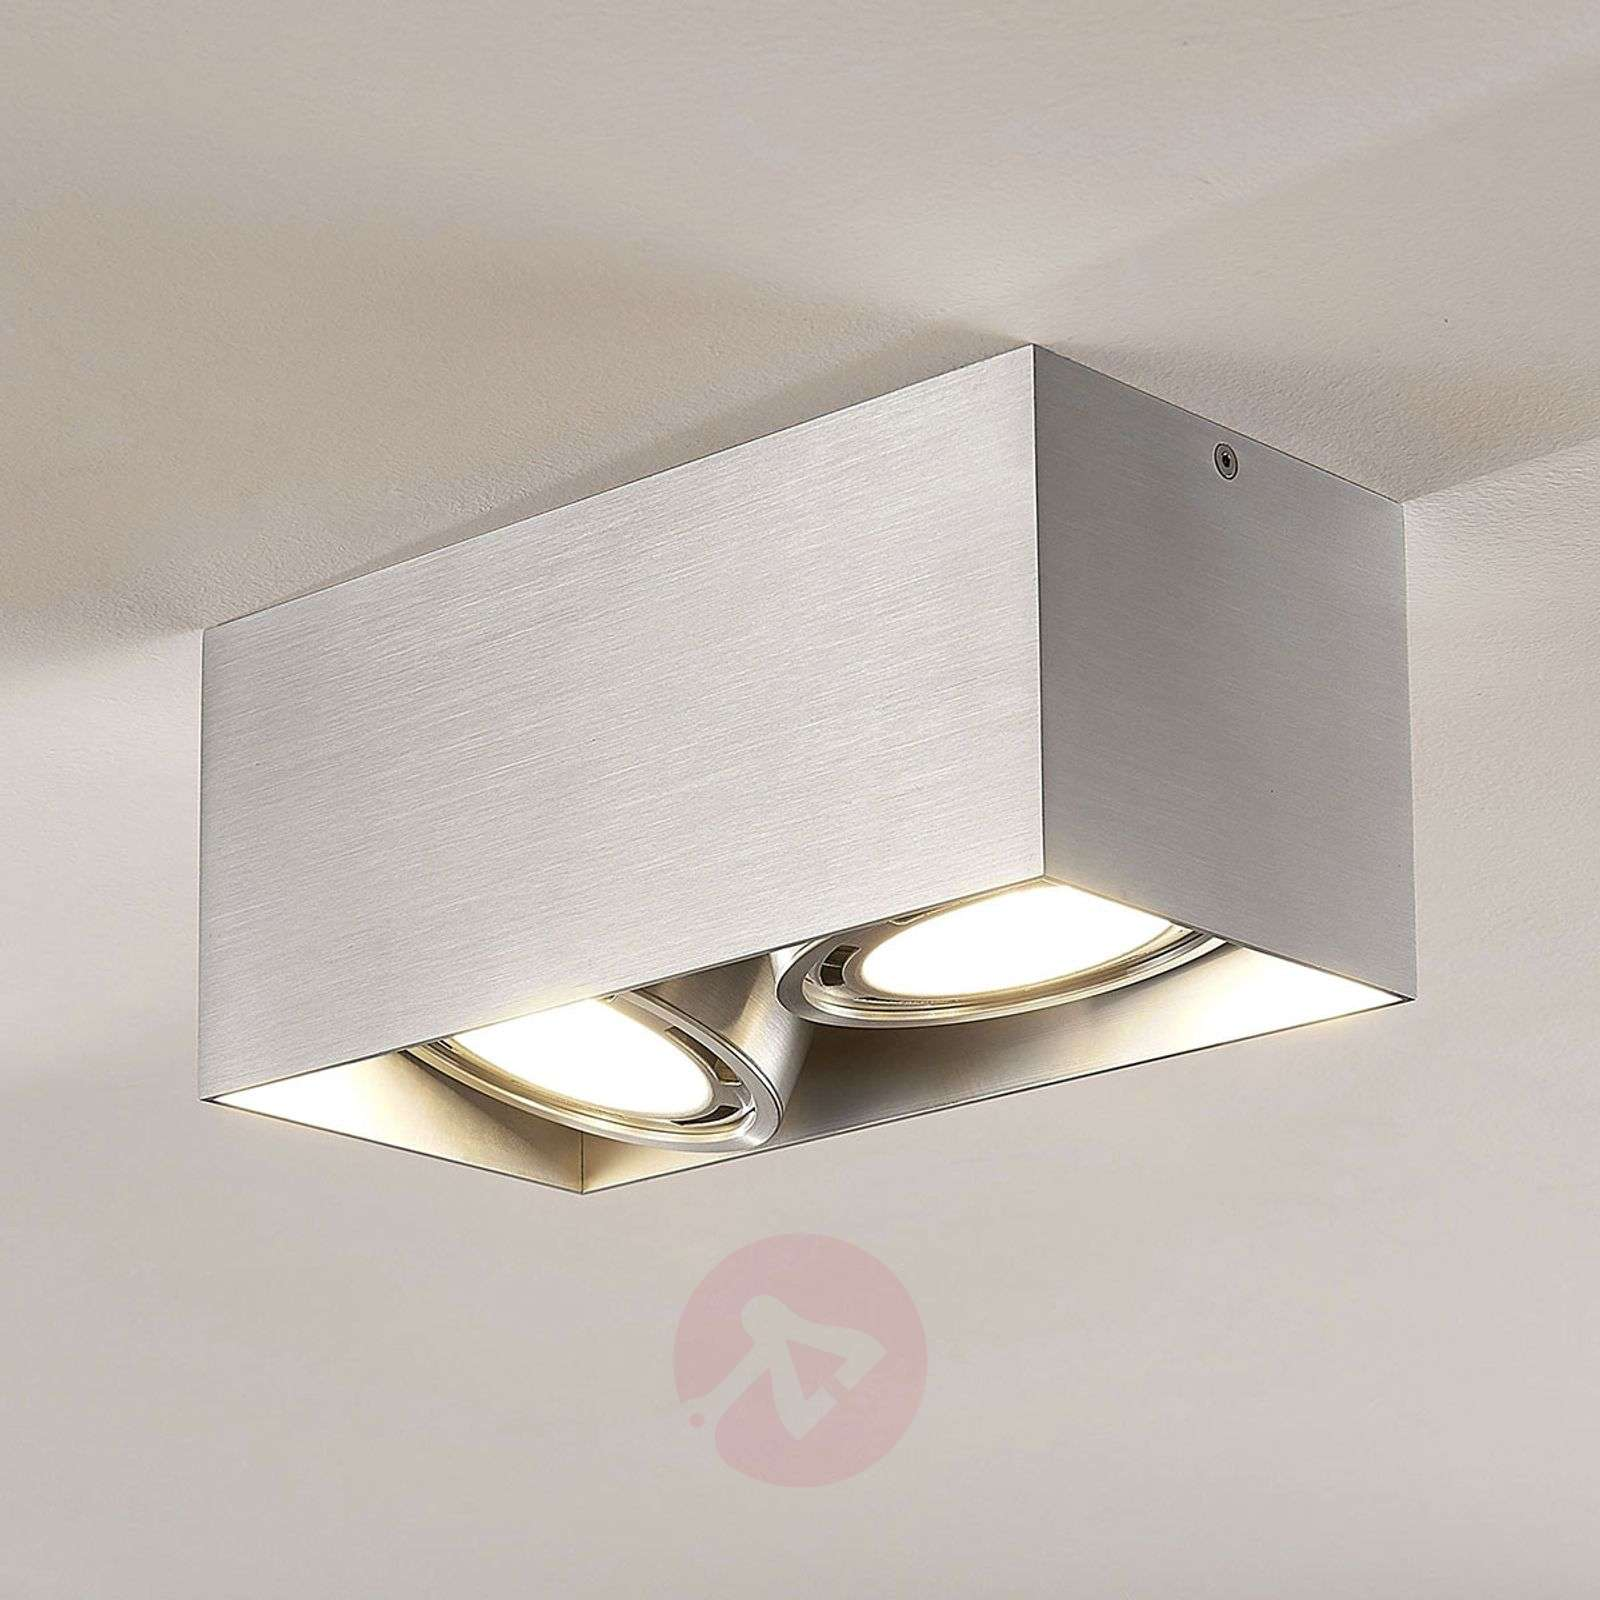 Downlight LED Rosalie, atenuable, angular, 2 luces-9621908-02